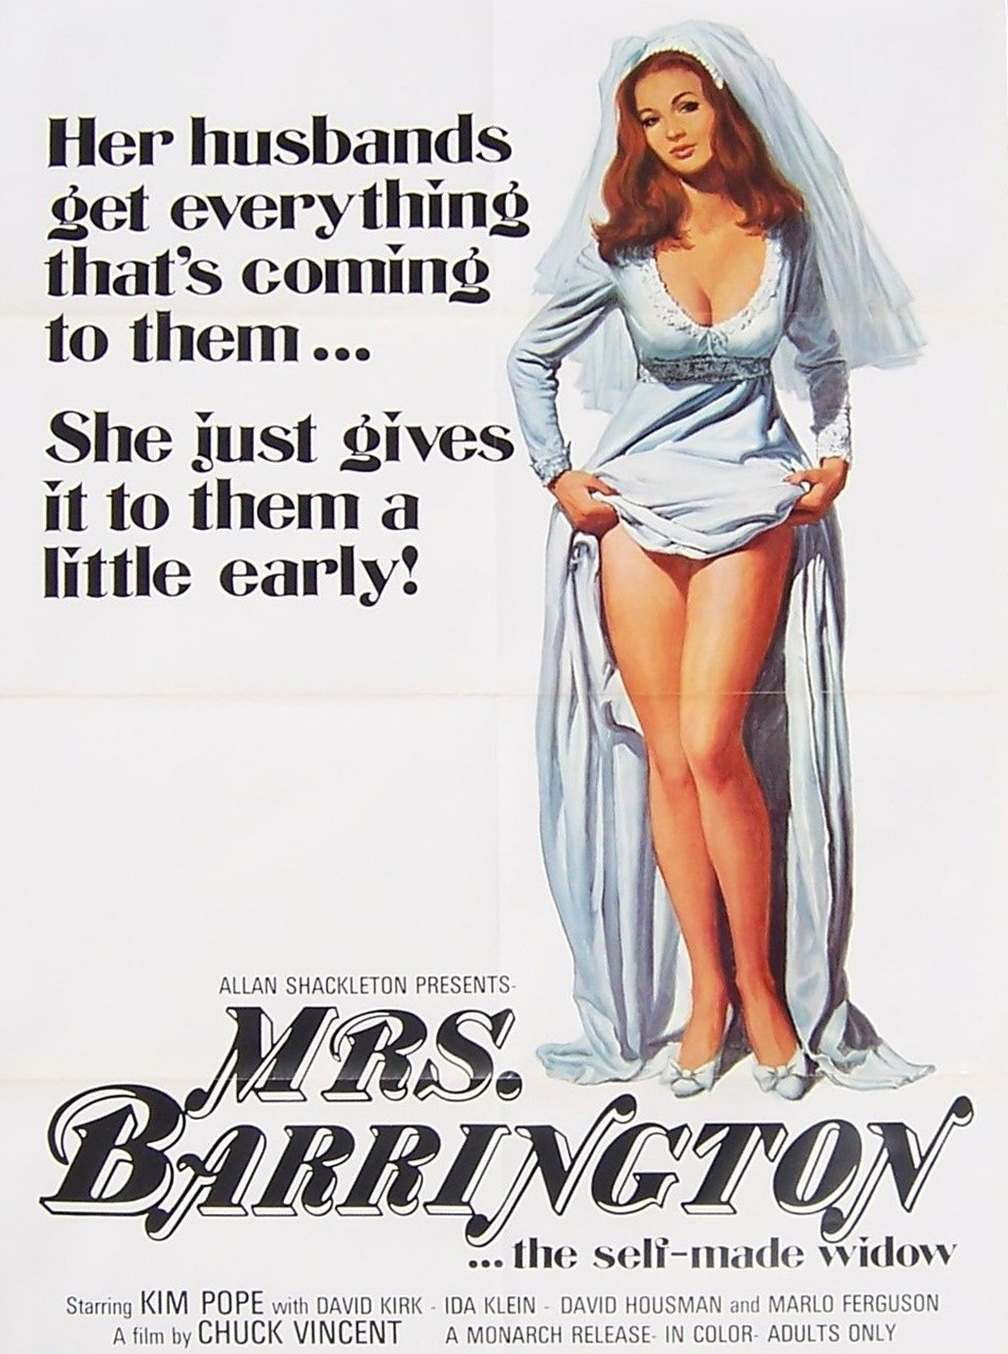 1970s Sexploitation Tag Lines Innuendo and Bad Puns Run